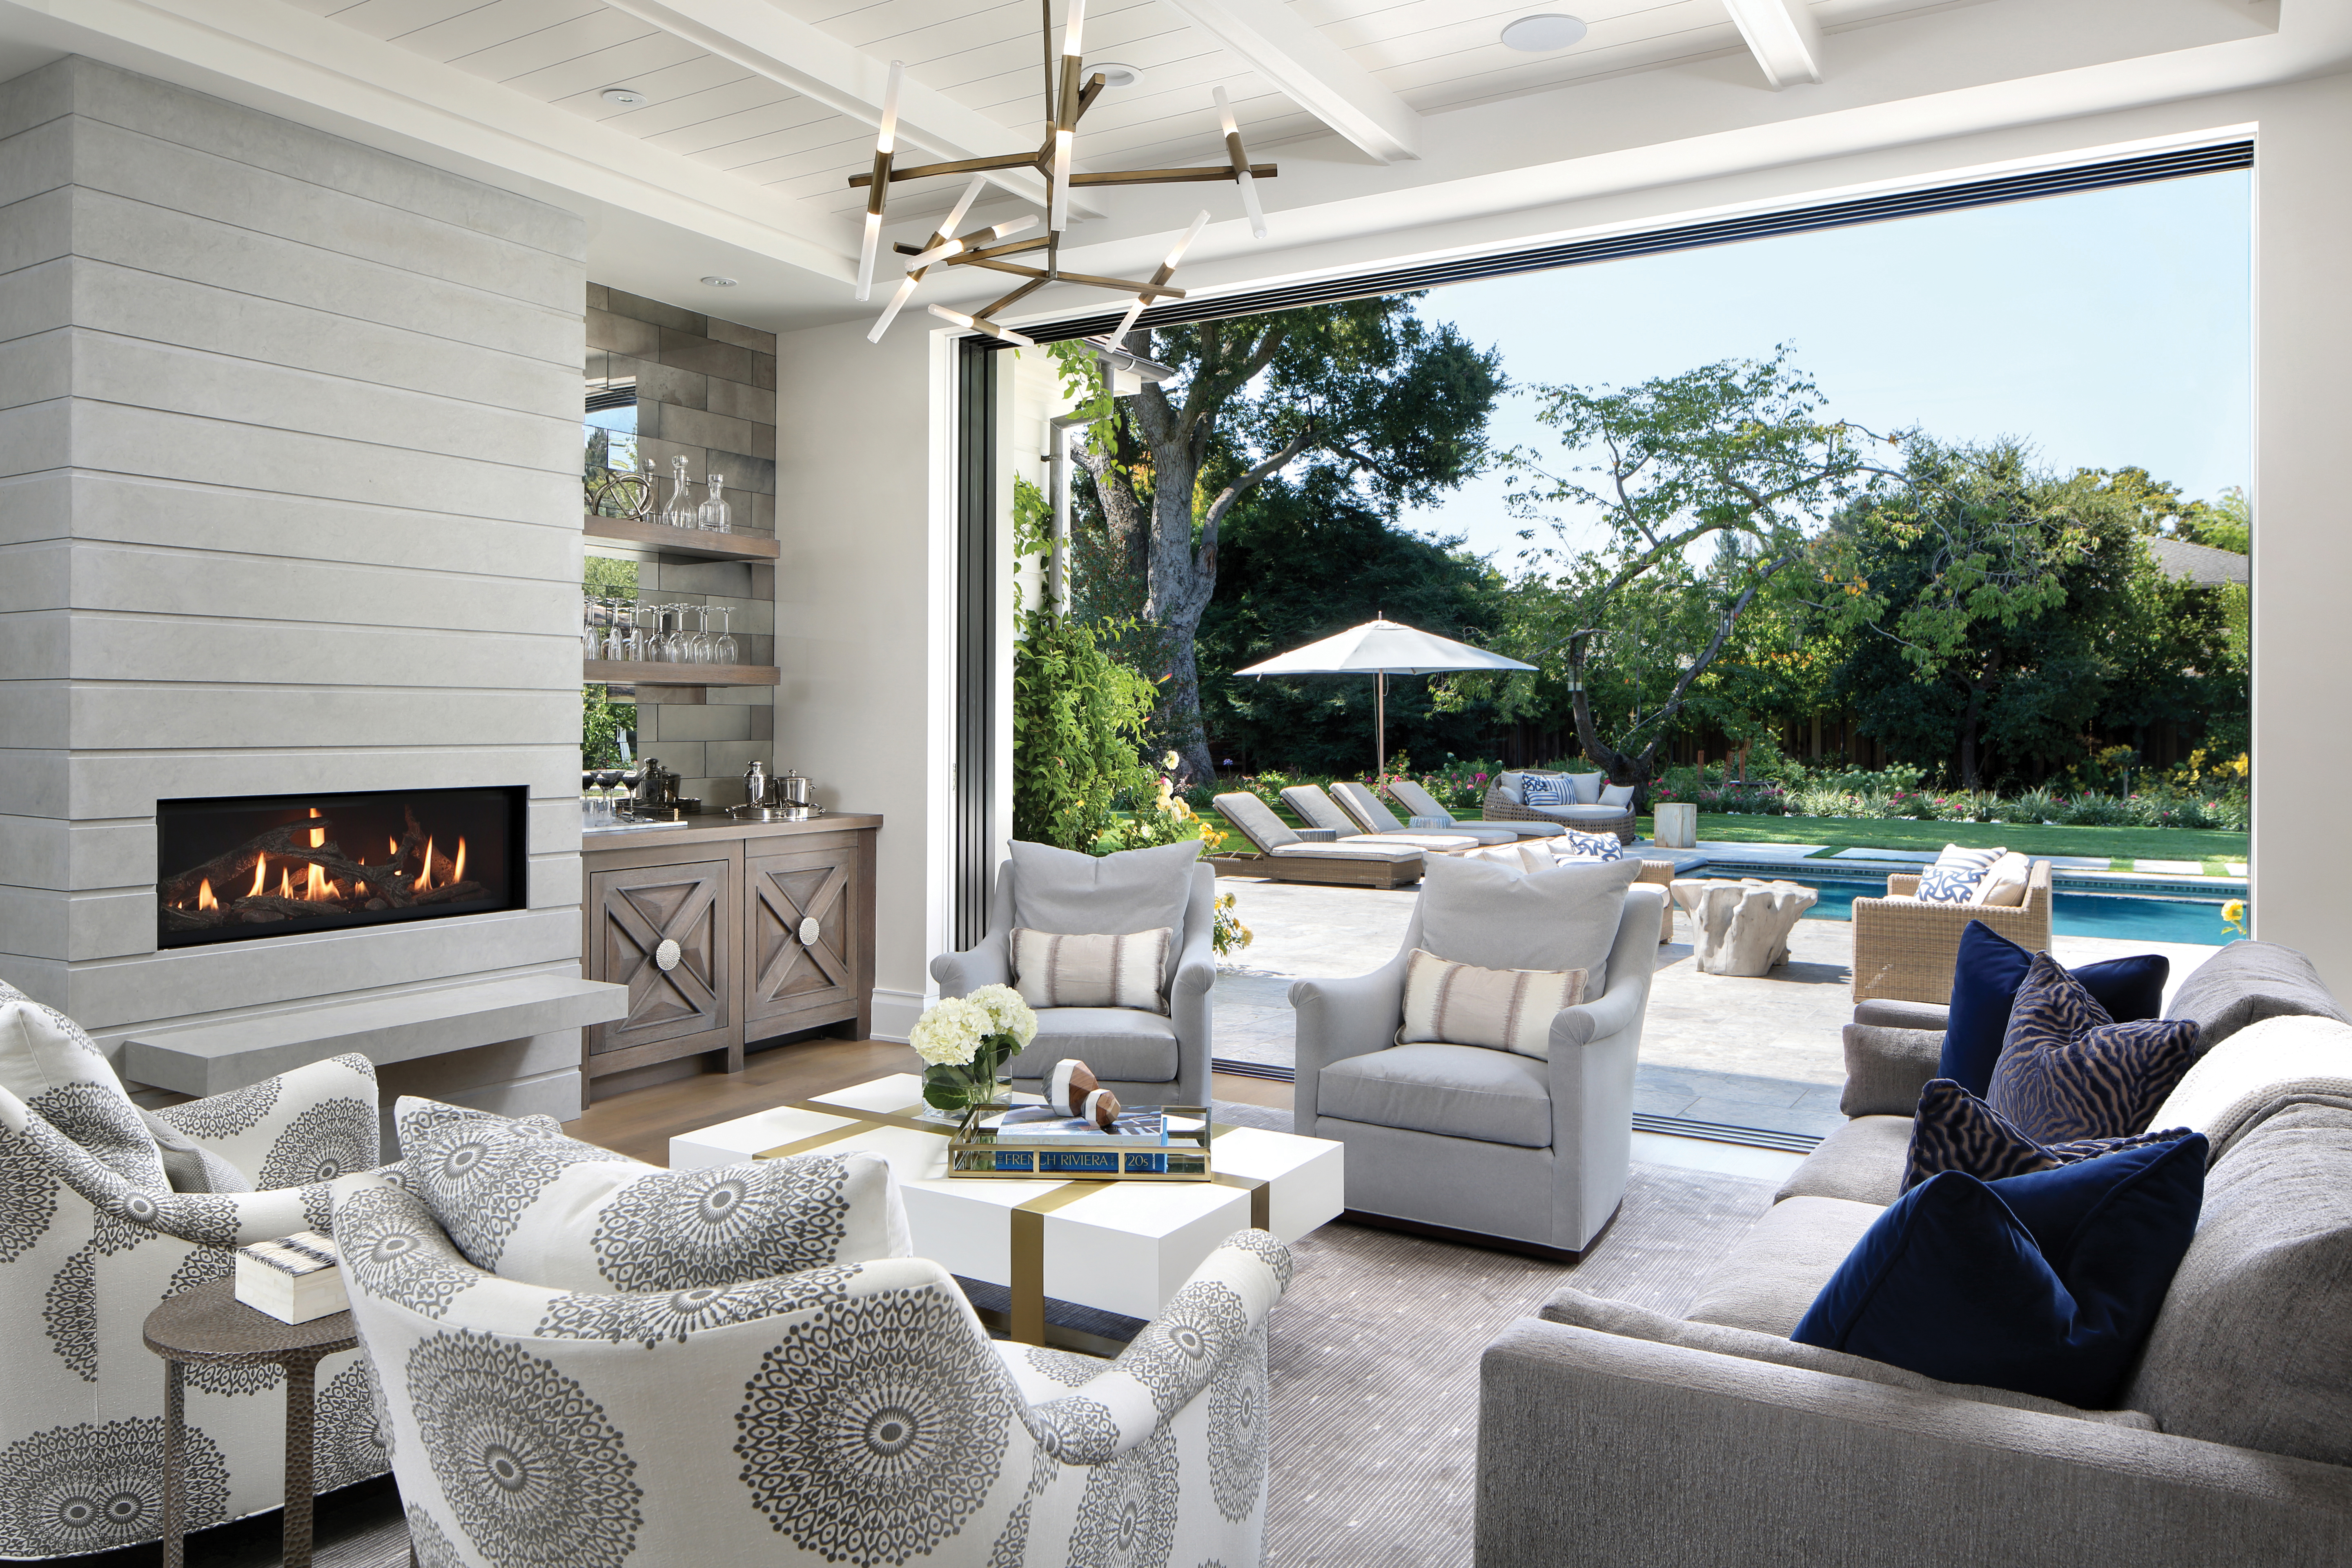 Overlooking the green backyard, the charming living space boasts aneutral color palette that blends seamlessly with nature —like the white wood paneling,light oak cabinetry, and limestone fireplace. The white coffee table is from Plantation Design and a gray sofa from Lee Industries is upholstered in Kravet fabric. Chairs from Hickory Chair are completed with Robert Allen fabric. Throw pillows from Osborne & Little, Kravet, and Larsen add extra texture and a touch of color to the inviting space.